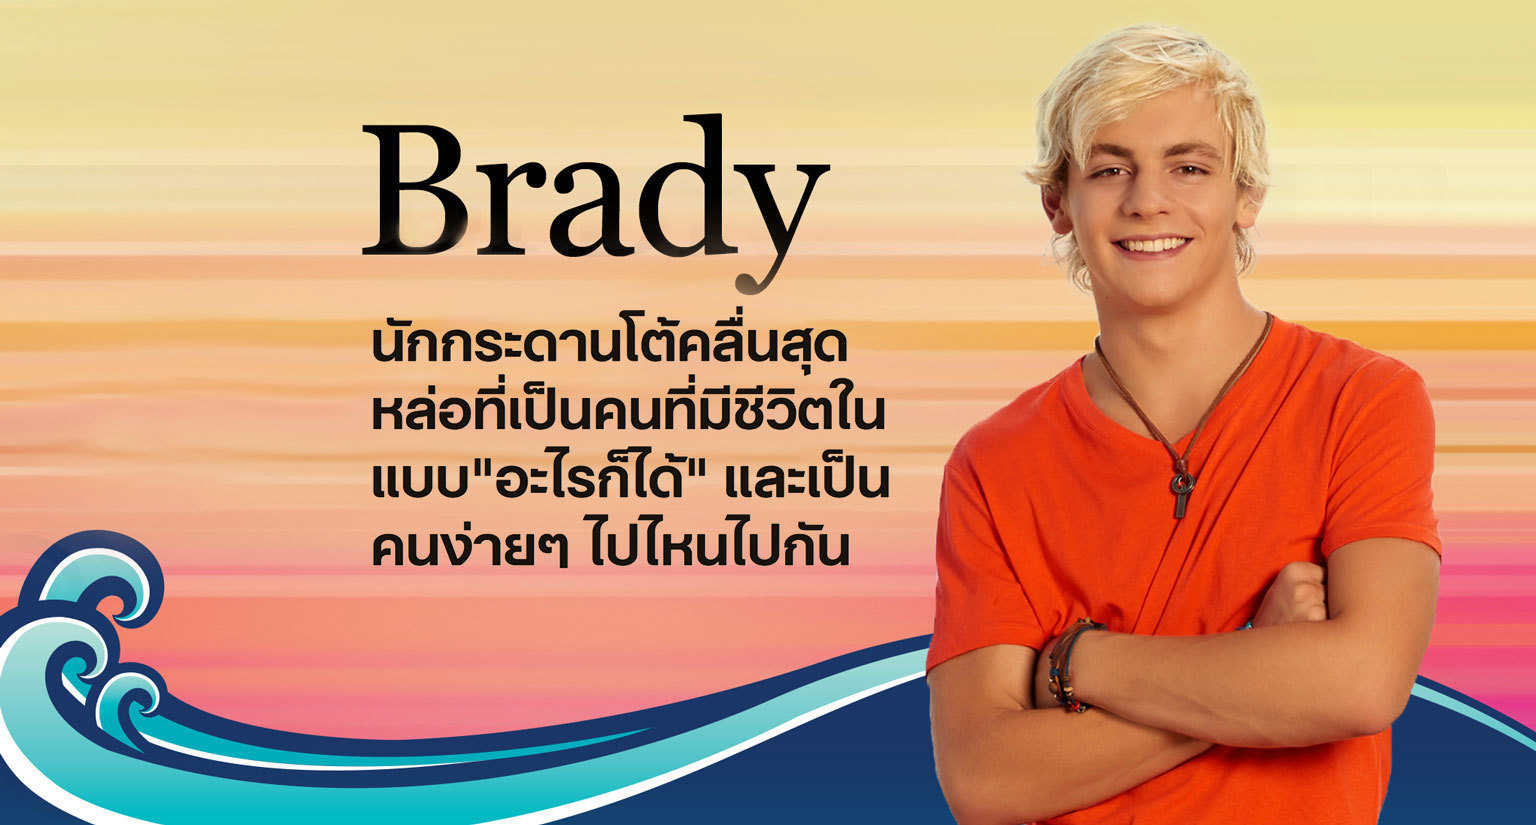 Teen Beach 2 - Show Home - Brady Character Hero - TH